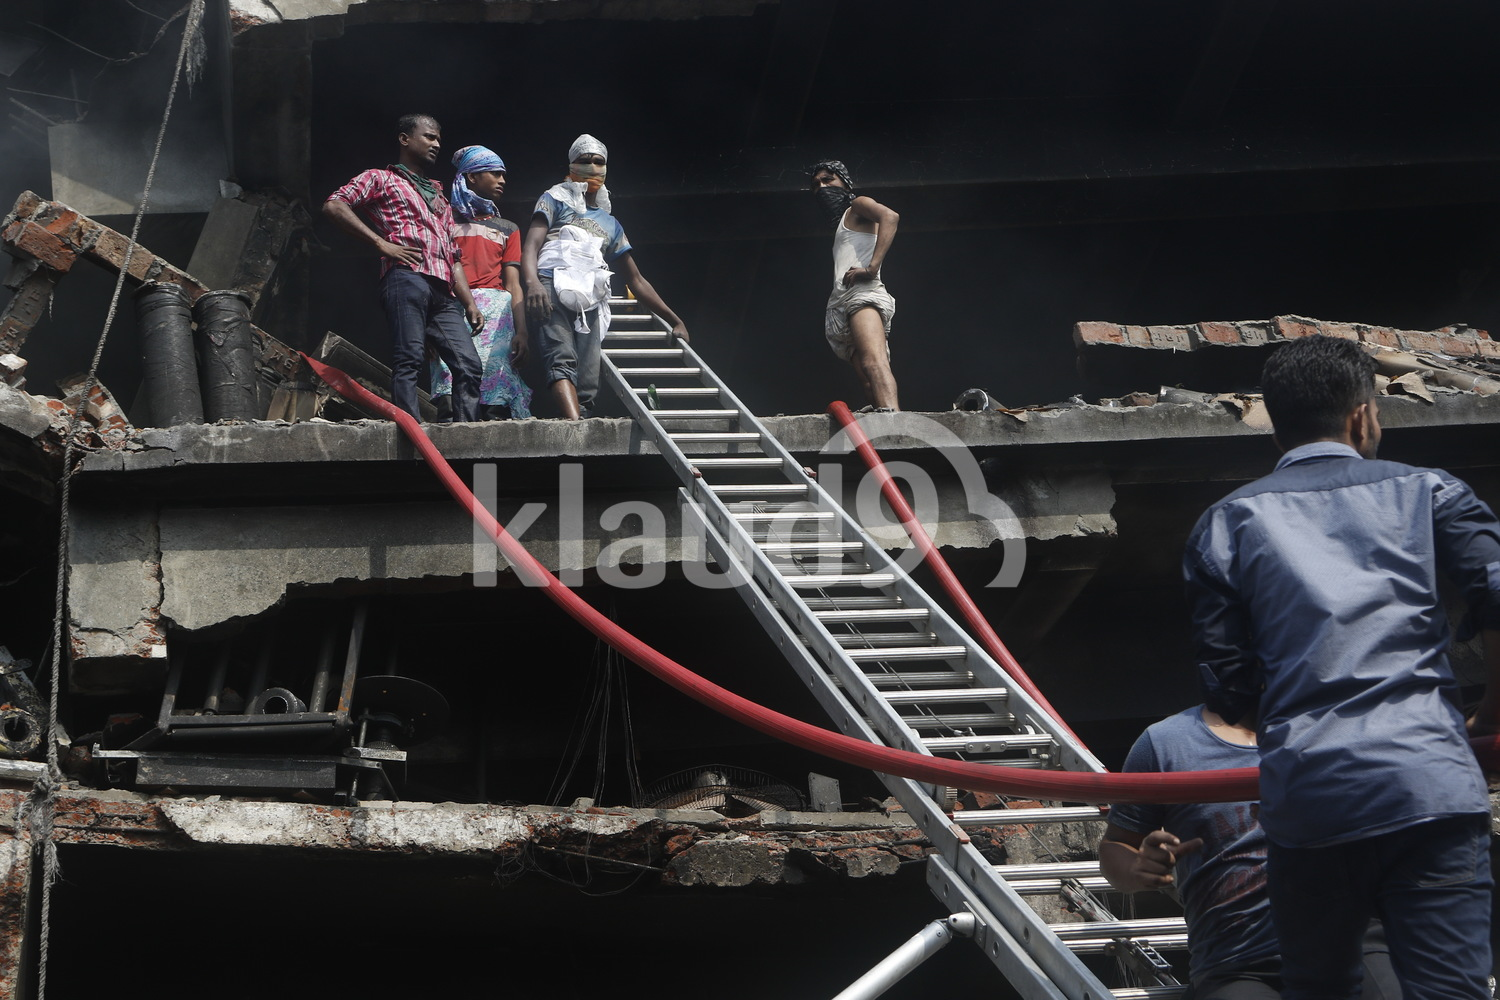 Rescuers surveying the aftermath of a factory fire.